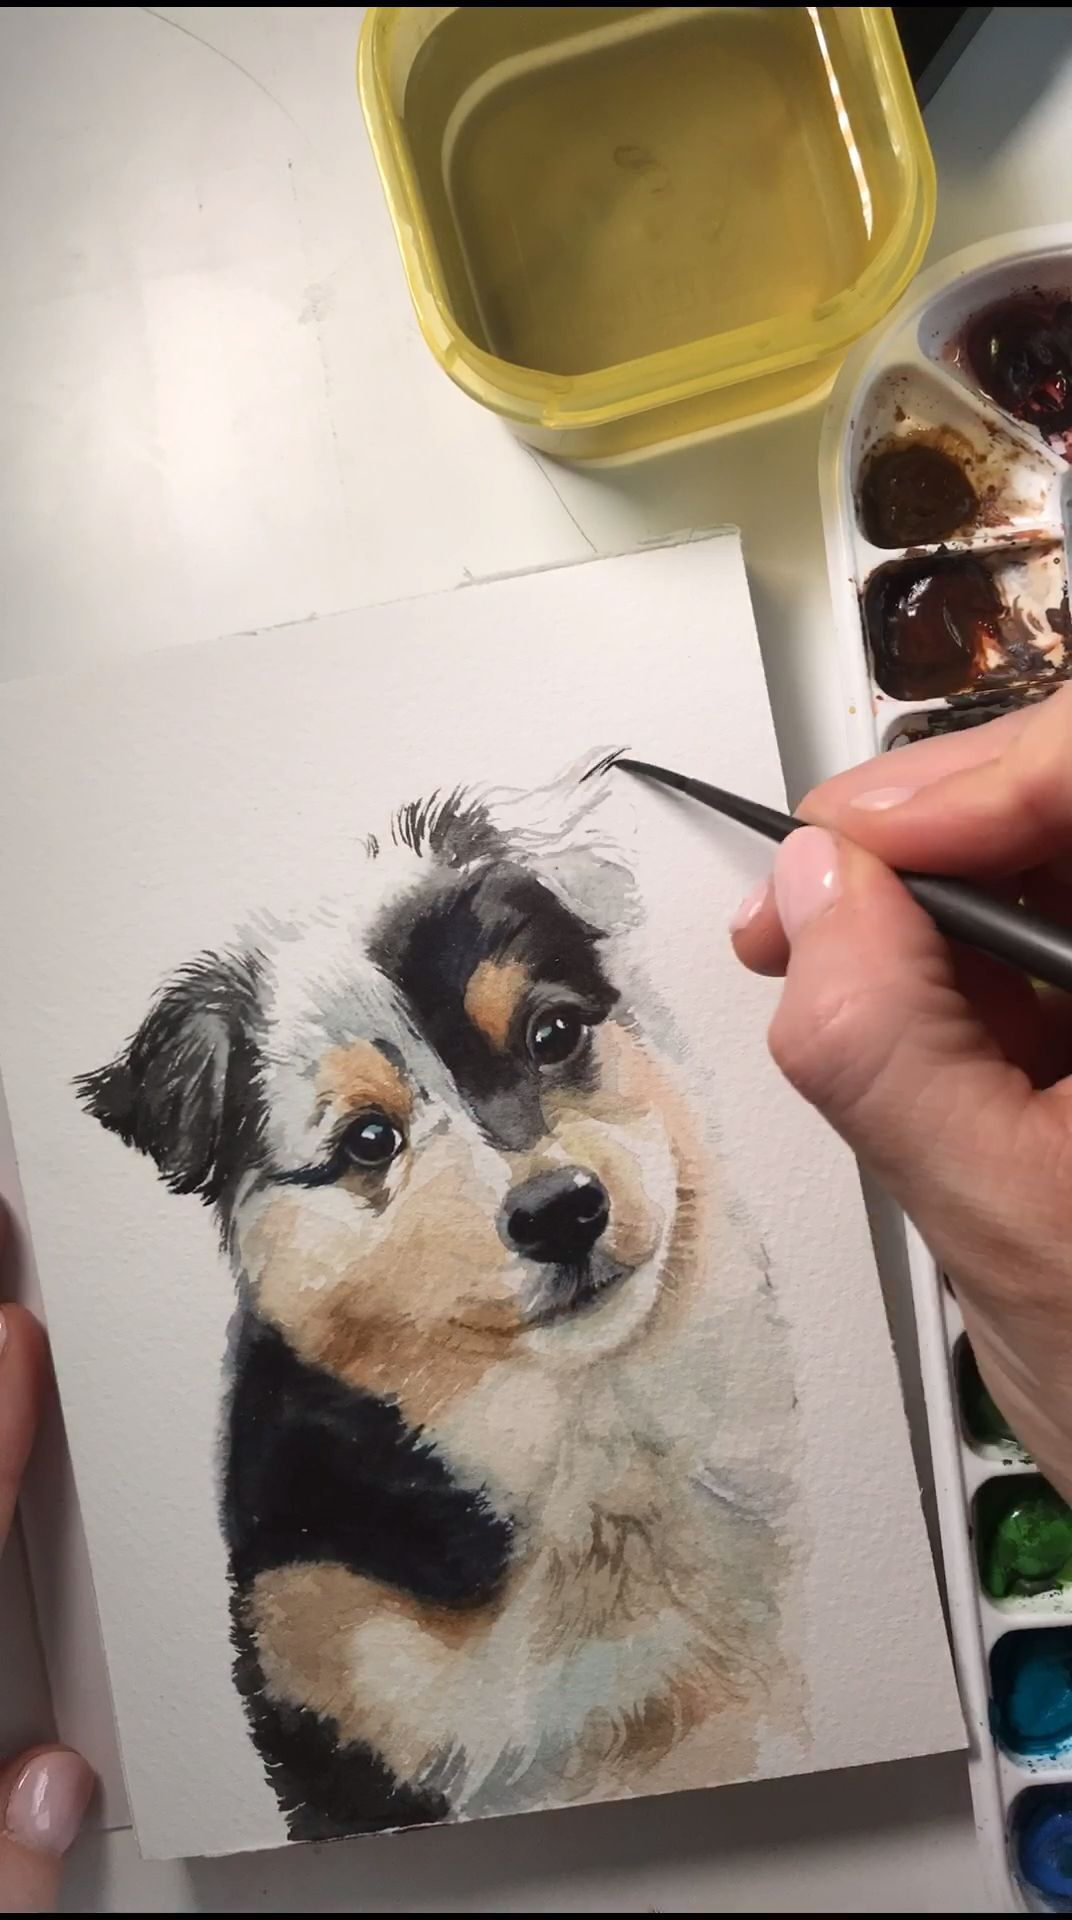 See this little guy and all my other puppy prints at watercolorluv.com. Check us out for unique nursery wall decor ideas and adorable baby animal art!